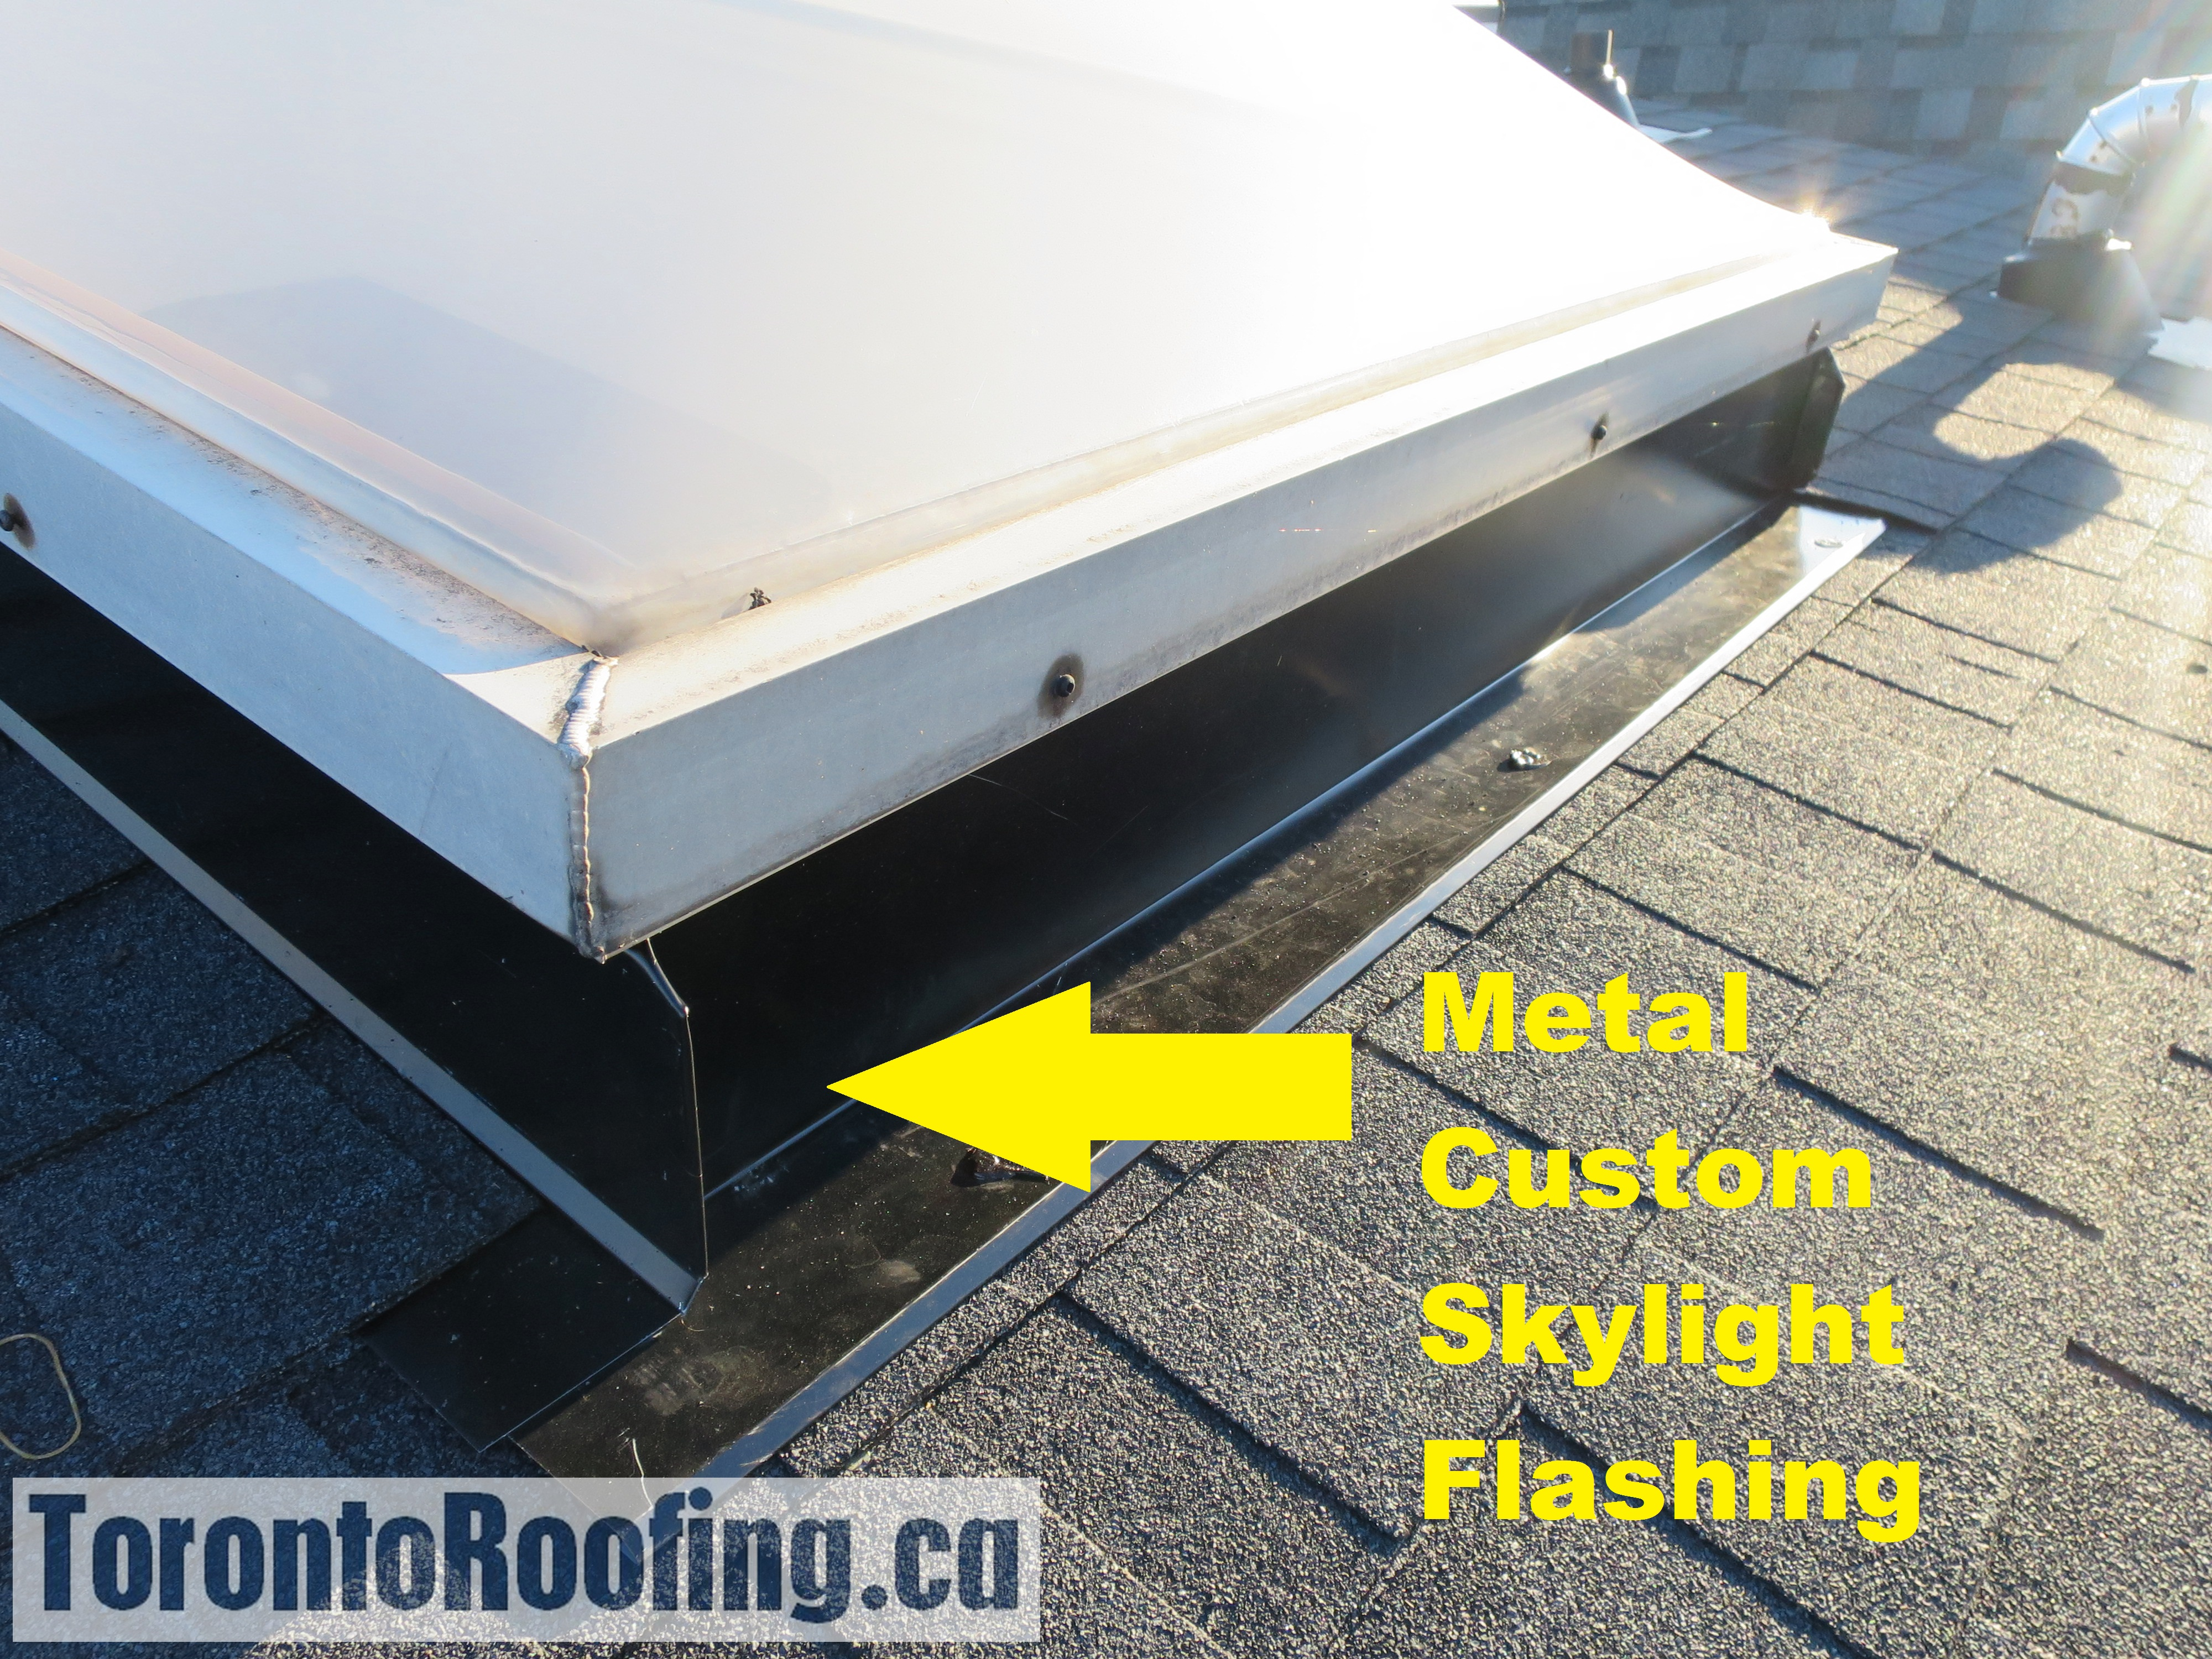 Toronto roofing flat roof modified bitumen skylight flashing gutters eavestrough shingles ice water shield grace flashing new diagram roofing custom metal flashing torontoroofing ca